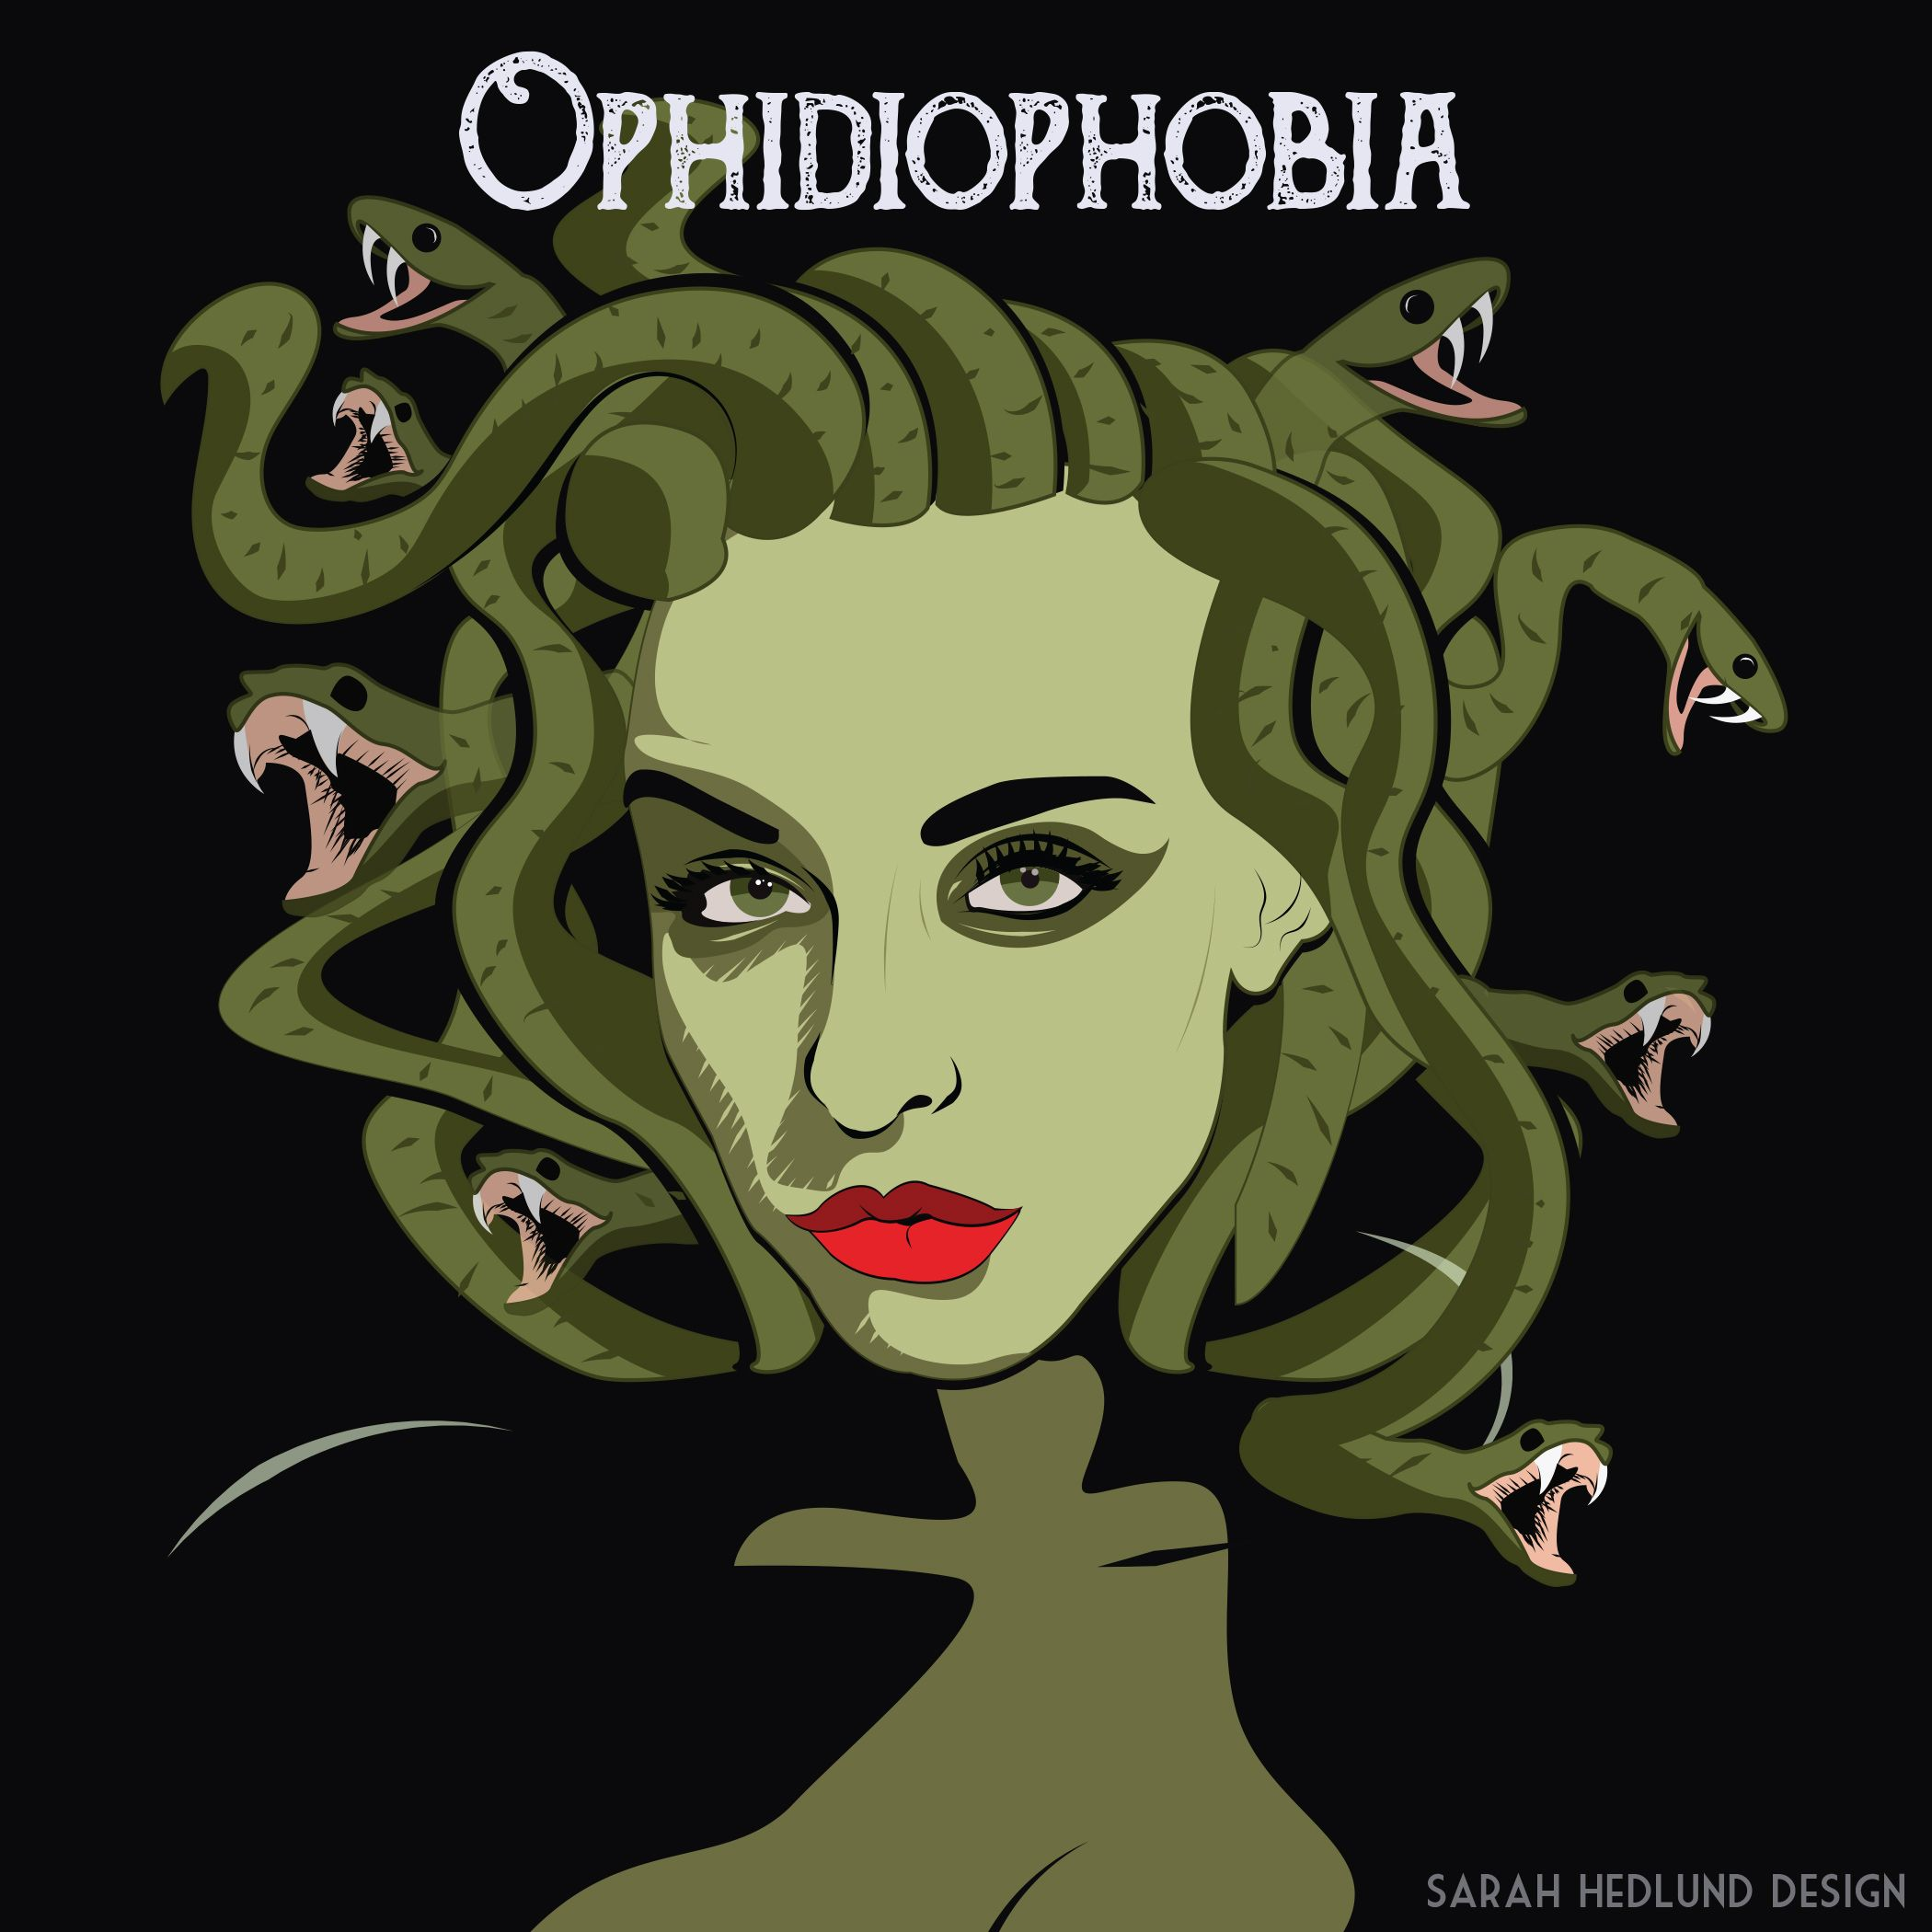 Day 27, Ophidiophobia: Fear of Snakes #31daysofhalloween #halloween #snakes #medusa #phobia #fear  www.sarahhedlund.com